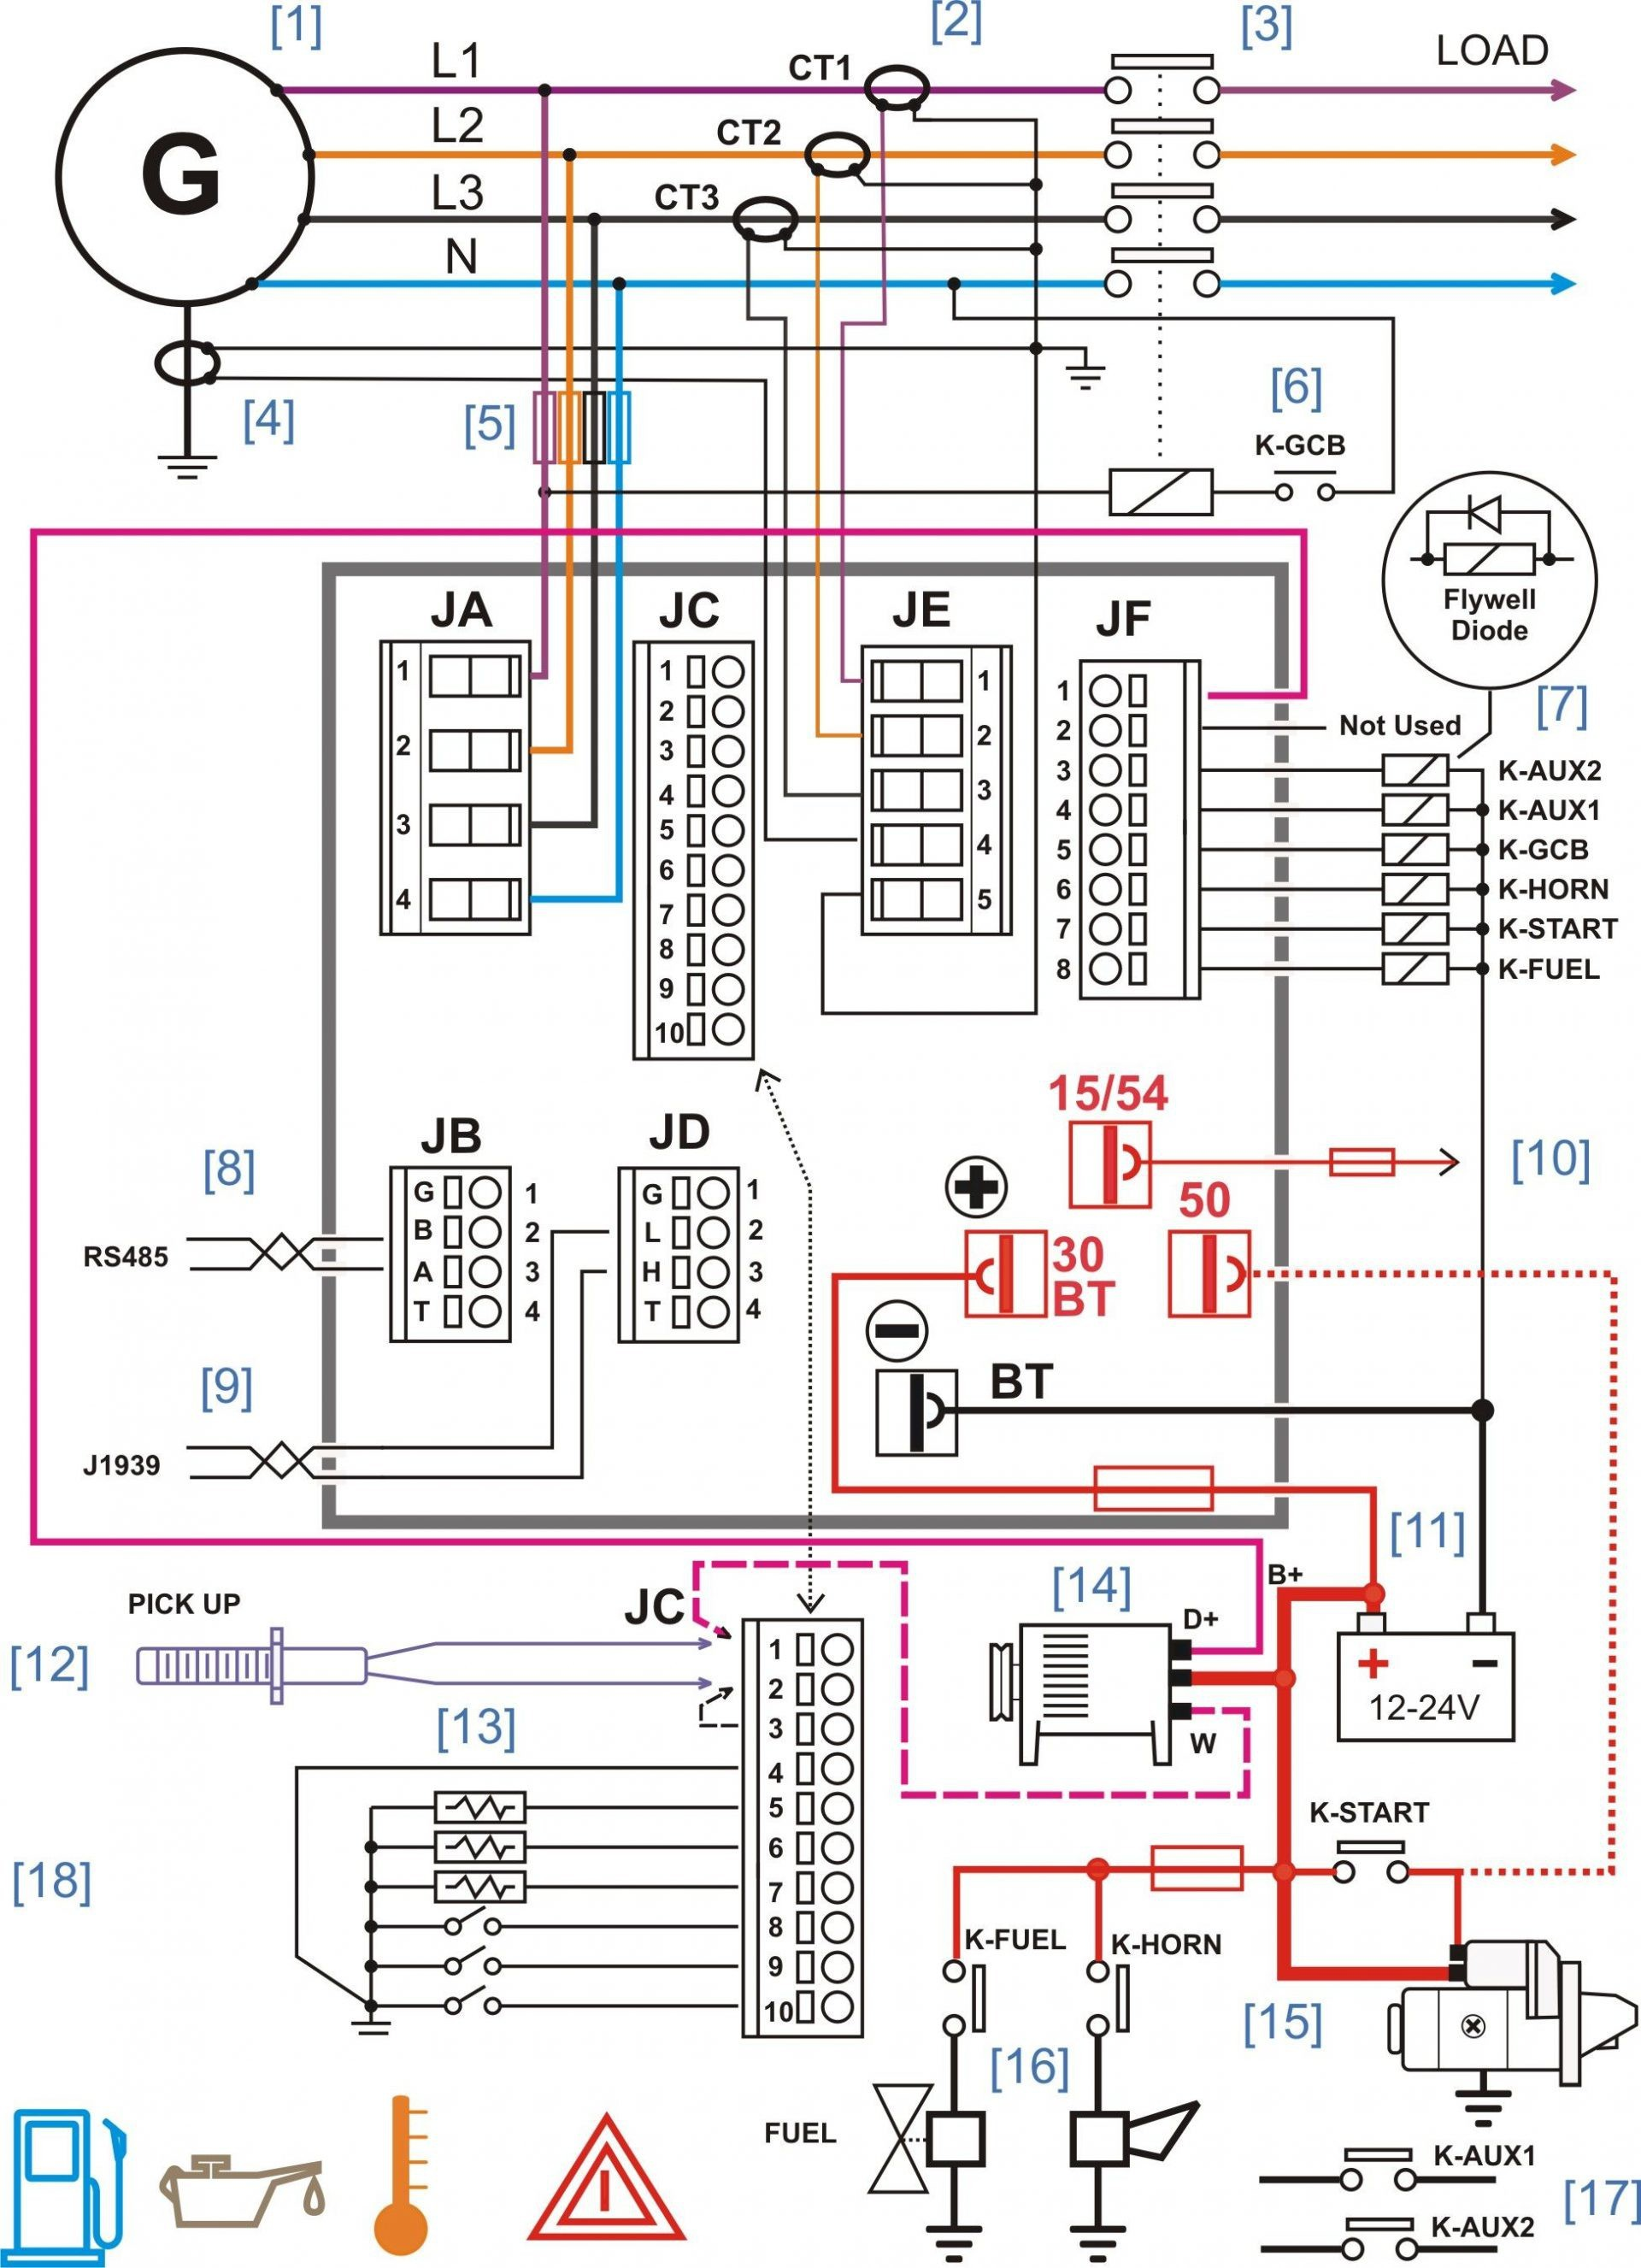 Electrical residential wiring diagrams my wiring diagram electricall wiring diagram house symbols electrical panel board pdf control schematic 1920 asfbconference2016 Images